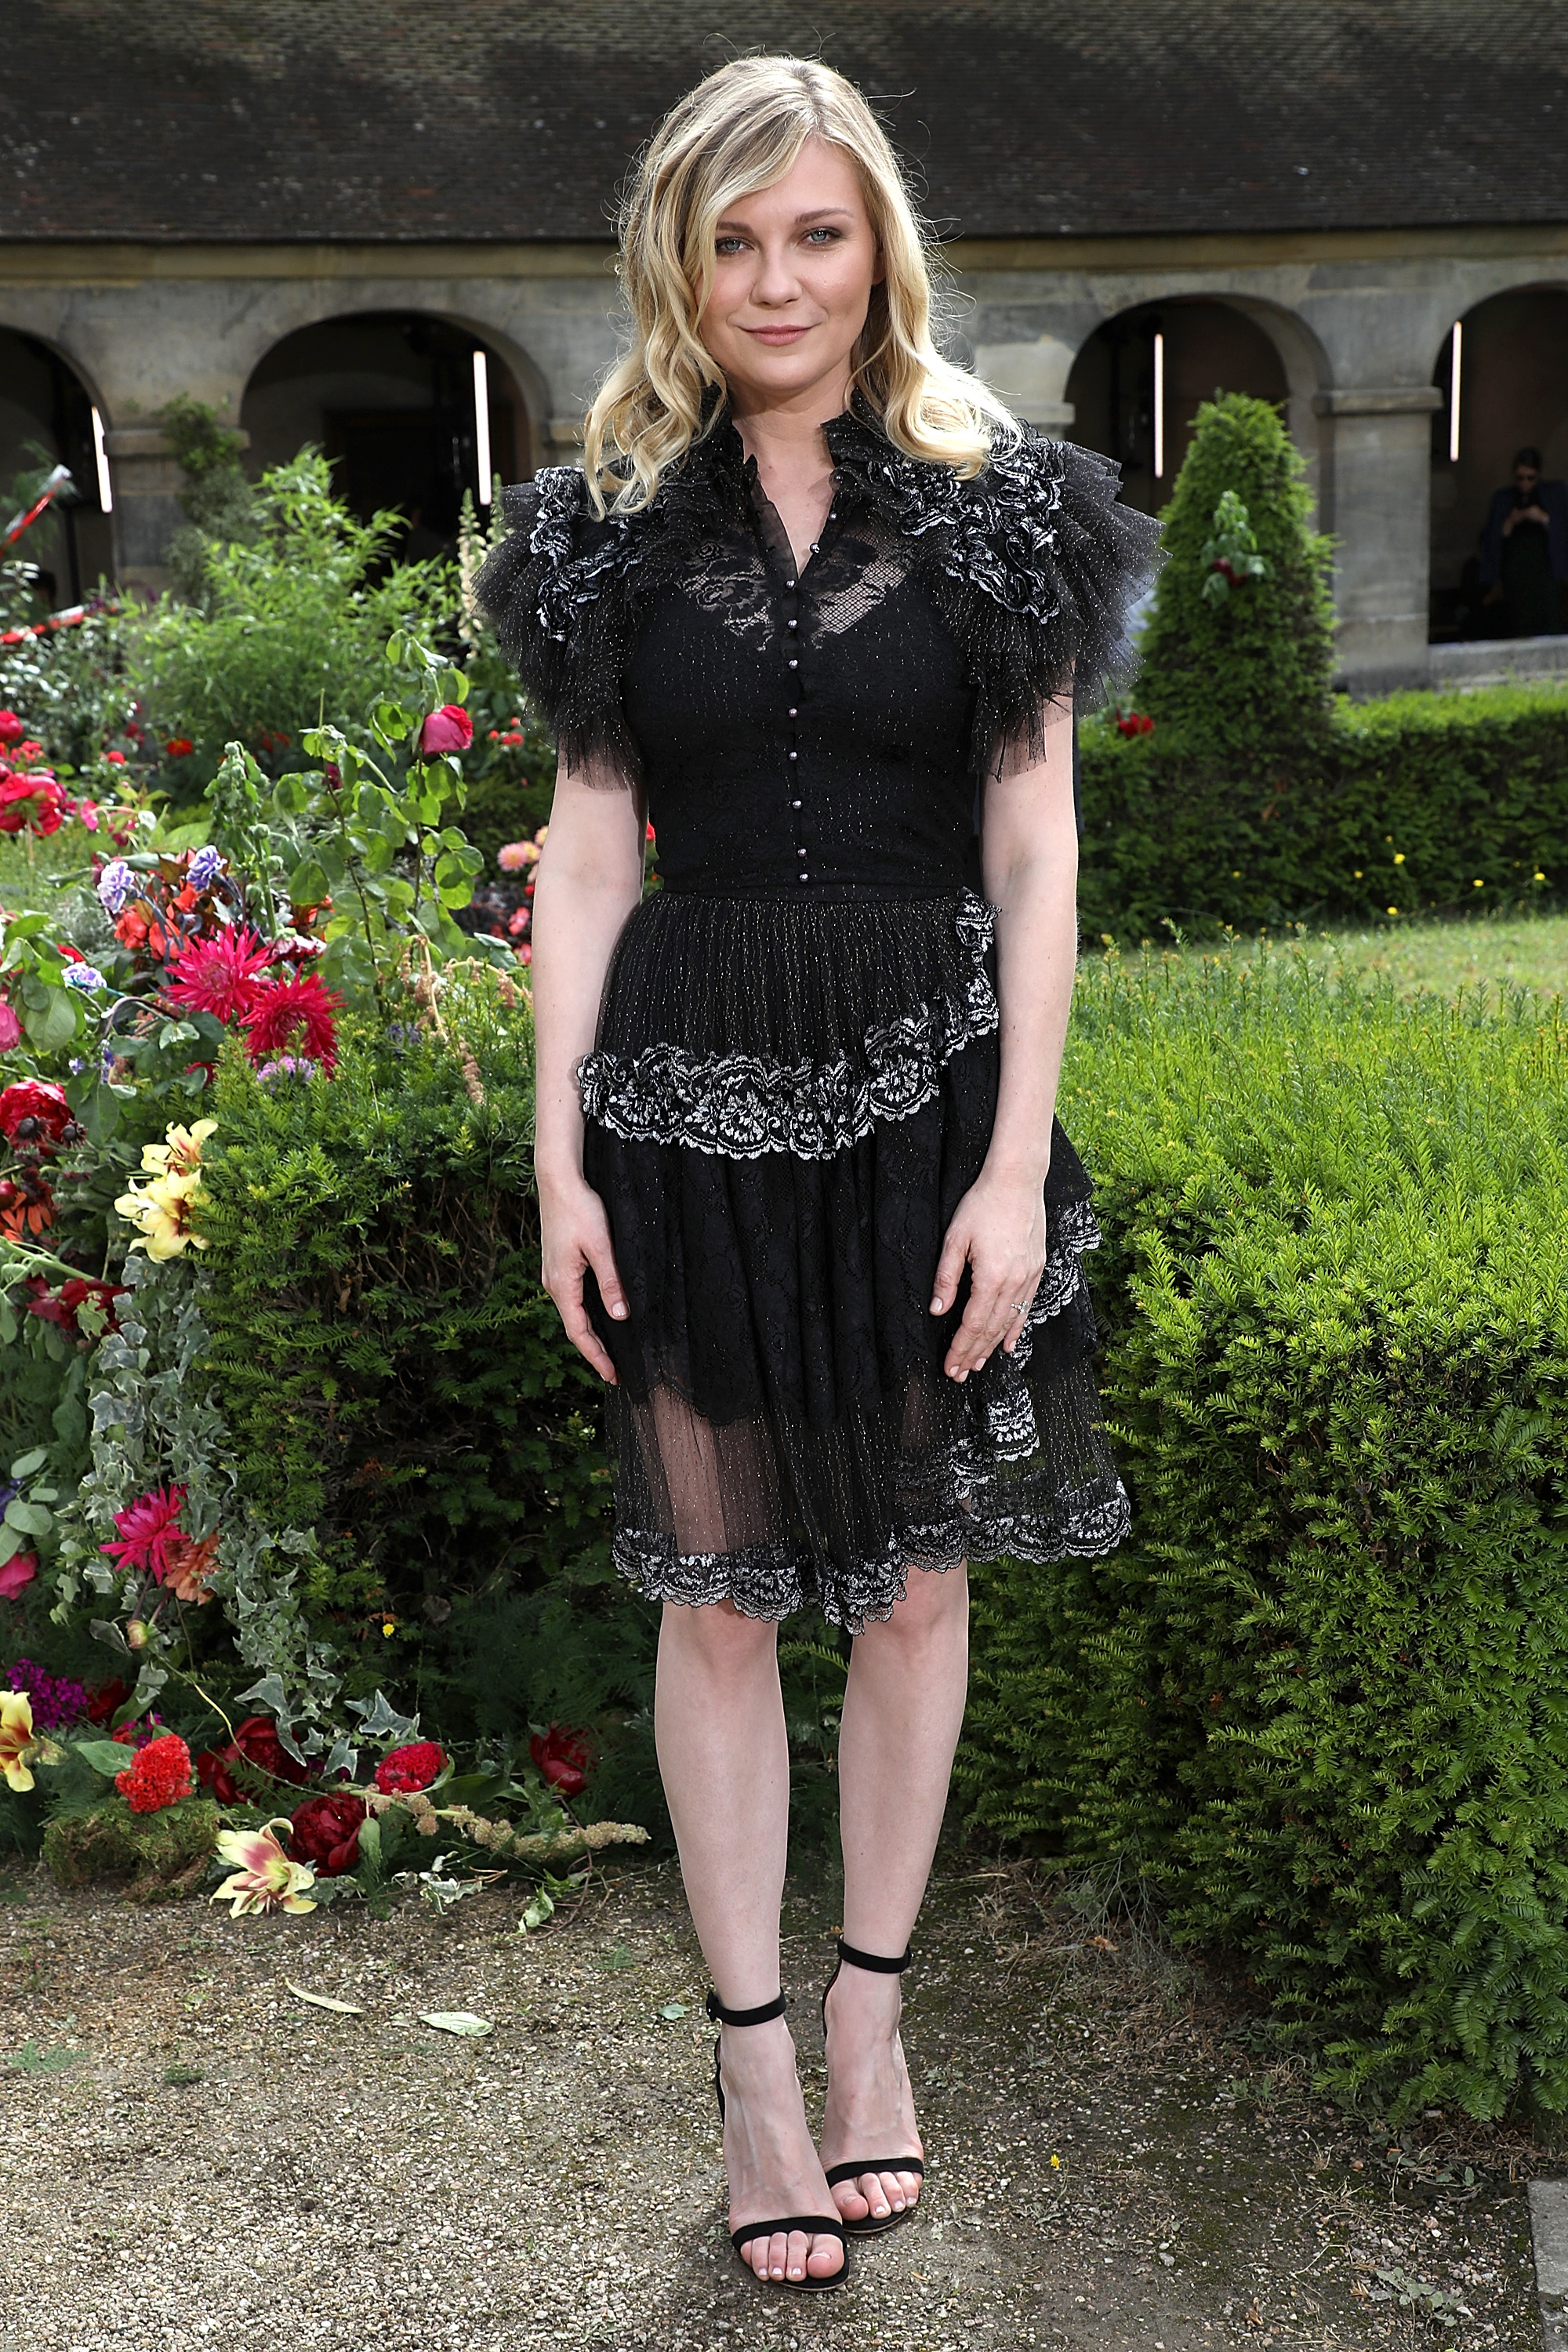 "<p><a href=""https://style.nine.com.au/kirsten-dunst"" target=""_blank"" draggable=""false"">Hollywood actress and star of <em>The Beguiled </em>Kirsten Dunst</a><em> </em>donned a new take on power shoulders to support her designer friends, the Mulleavy sisters, for Rodarte's Paris premiere at Haute couture.</p> <p>In a dress reminiscent of the sister act's designs for Black Swan, Kirsten joined Brie Larson and Tracee Ellis Ross at the chic showing.</p> <p>While the models were red carpet ready in extravagant gowns, with hair festooned with flowers, this season's front row have dialled back the glamour, balancing sleek looks with a slightly undone approach to beauty.</p> <p>The era of dressing like a peacock to attract photographer's attention may be over, with jaunty jumpsuits, prim tunics and urban trenches the order of the day.</p> <p>See the winning looks from day one of haute couture here.</p>"